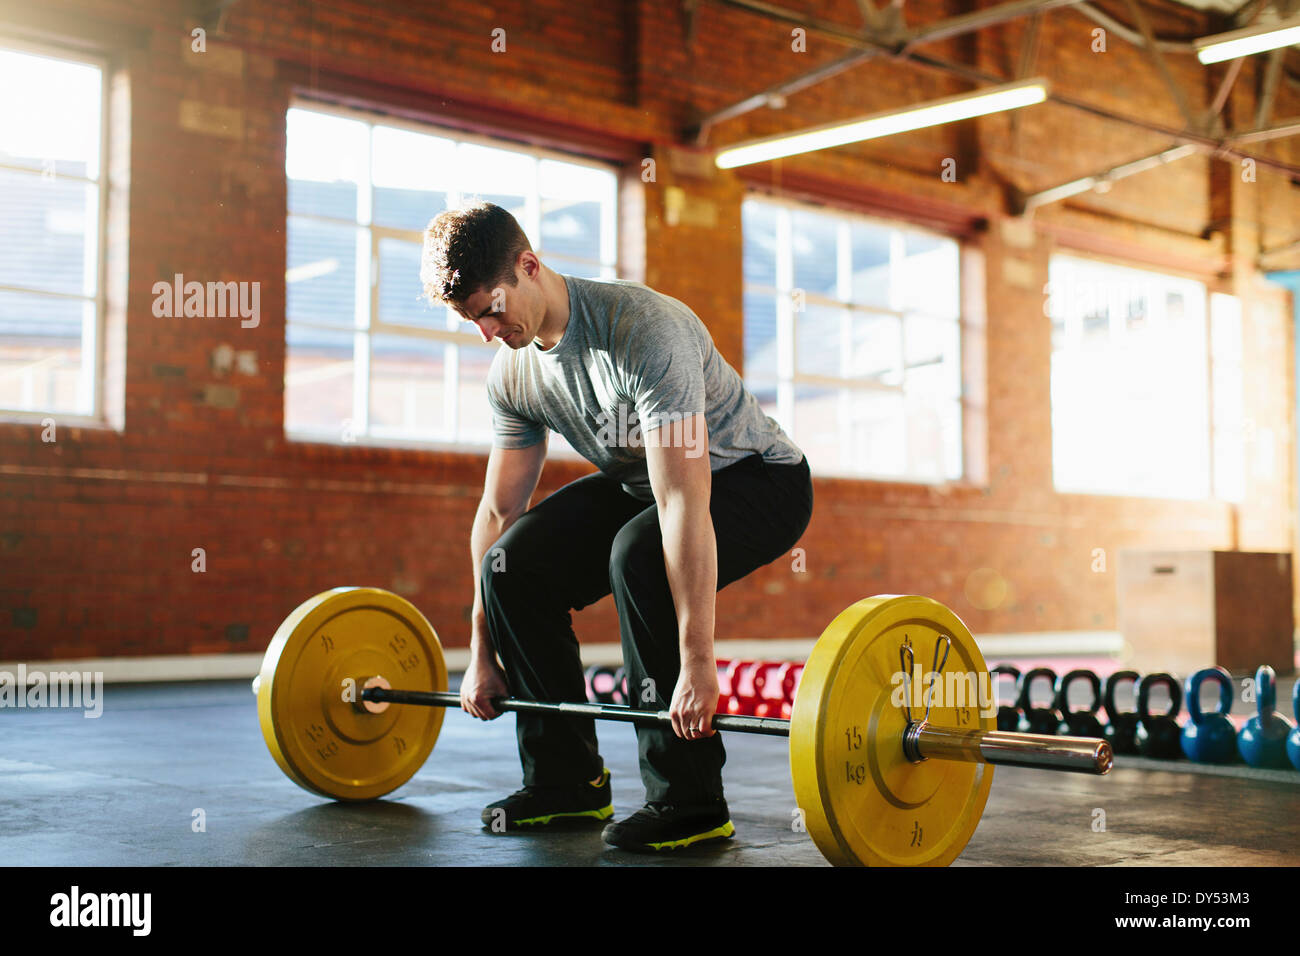 Man lifting weights in gymnasium - Stock Image